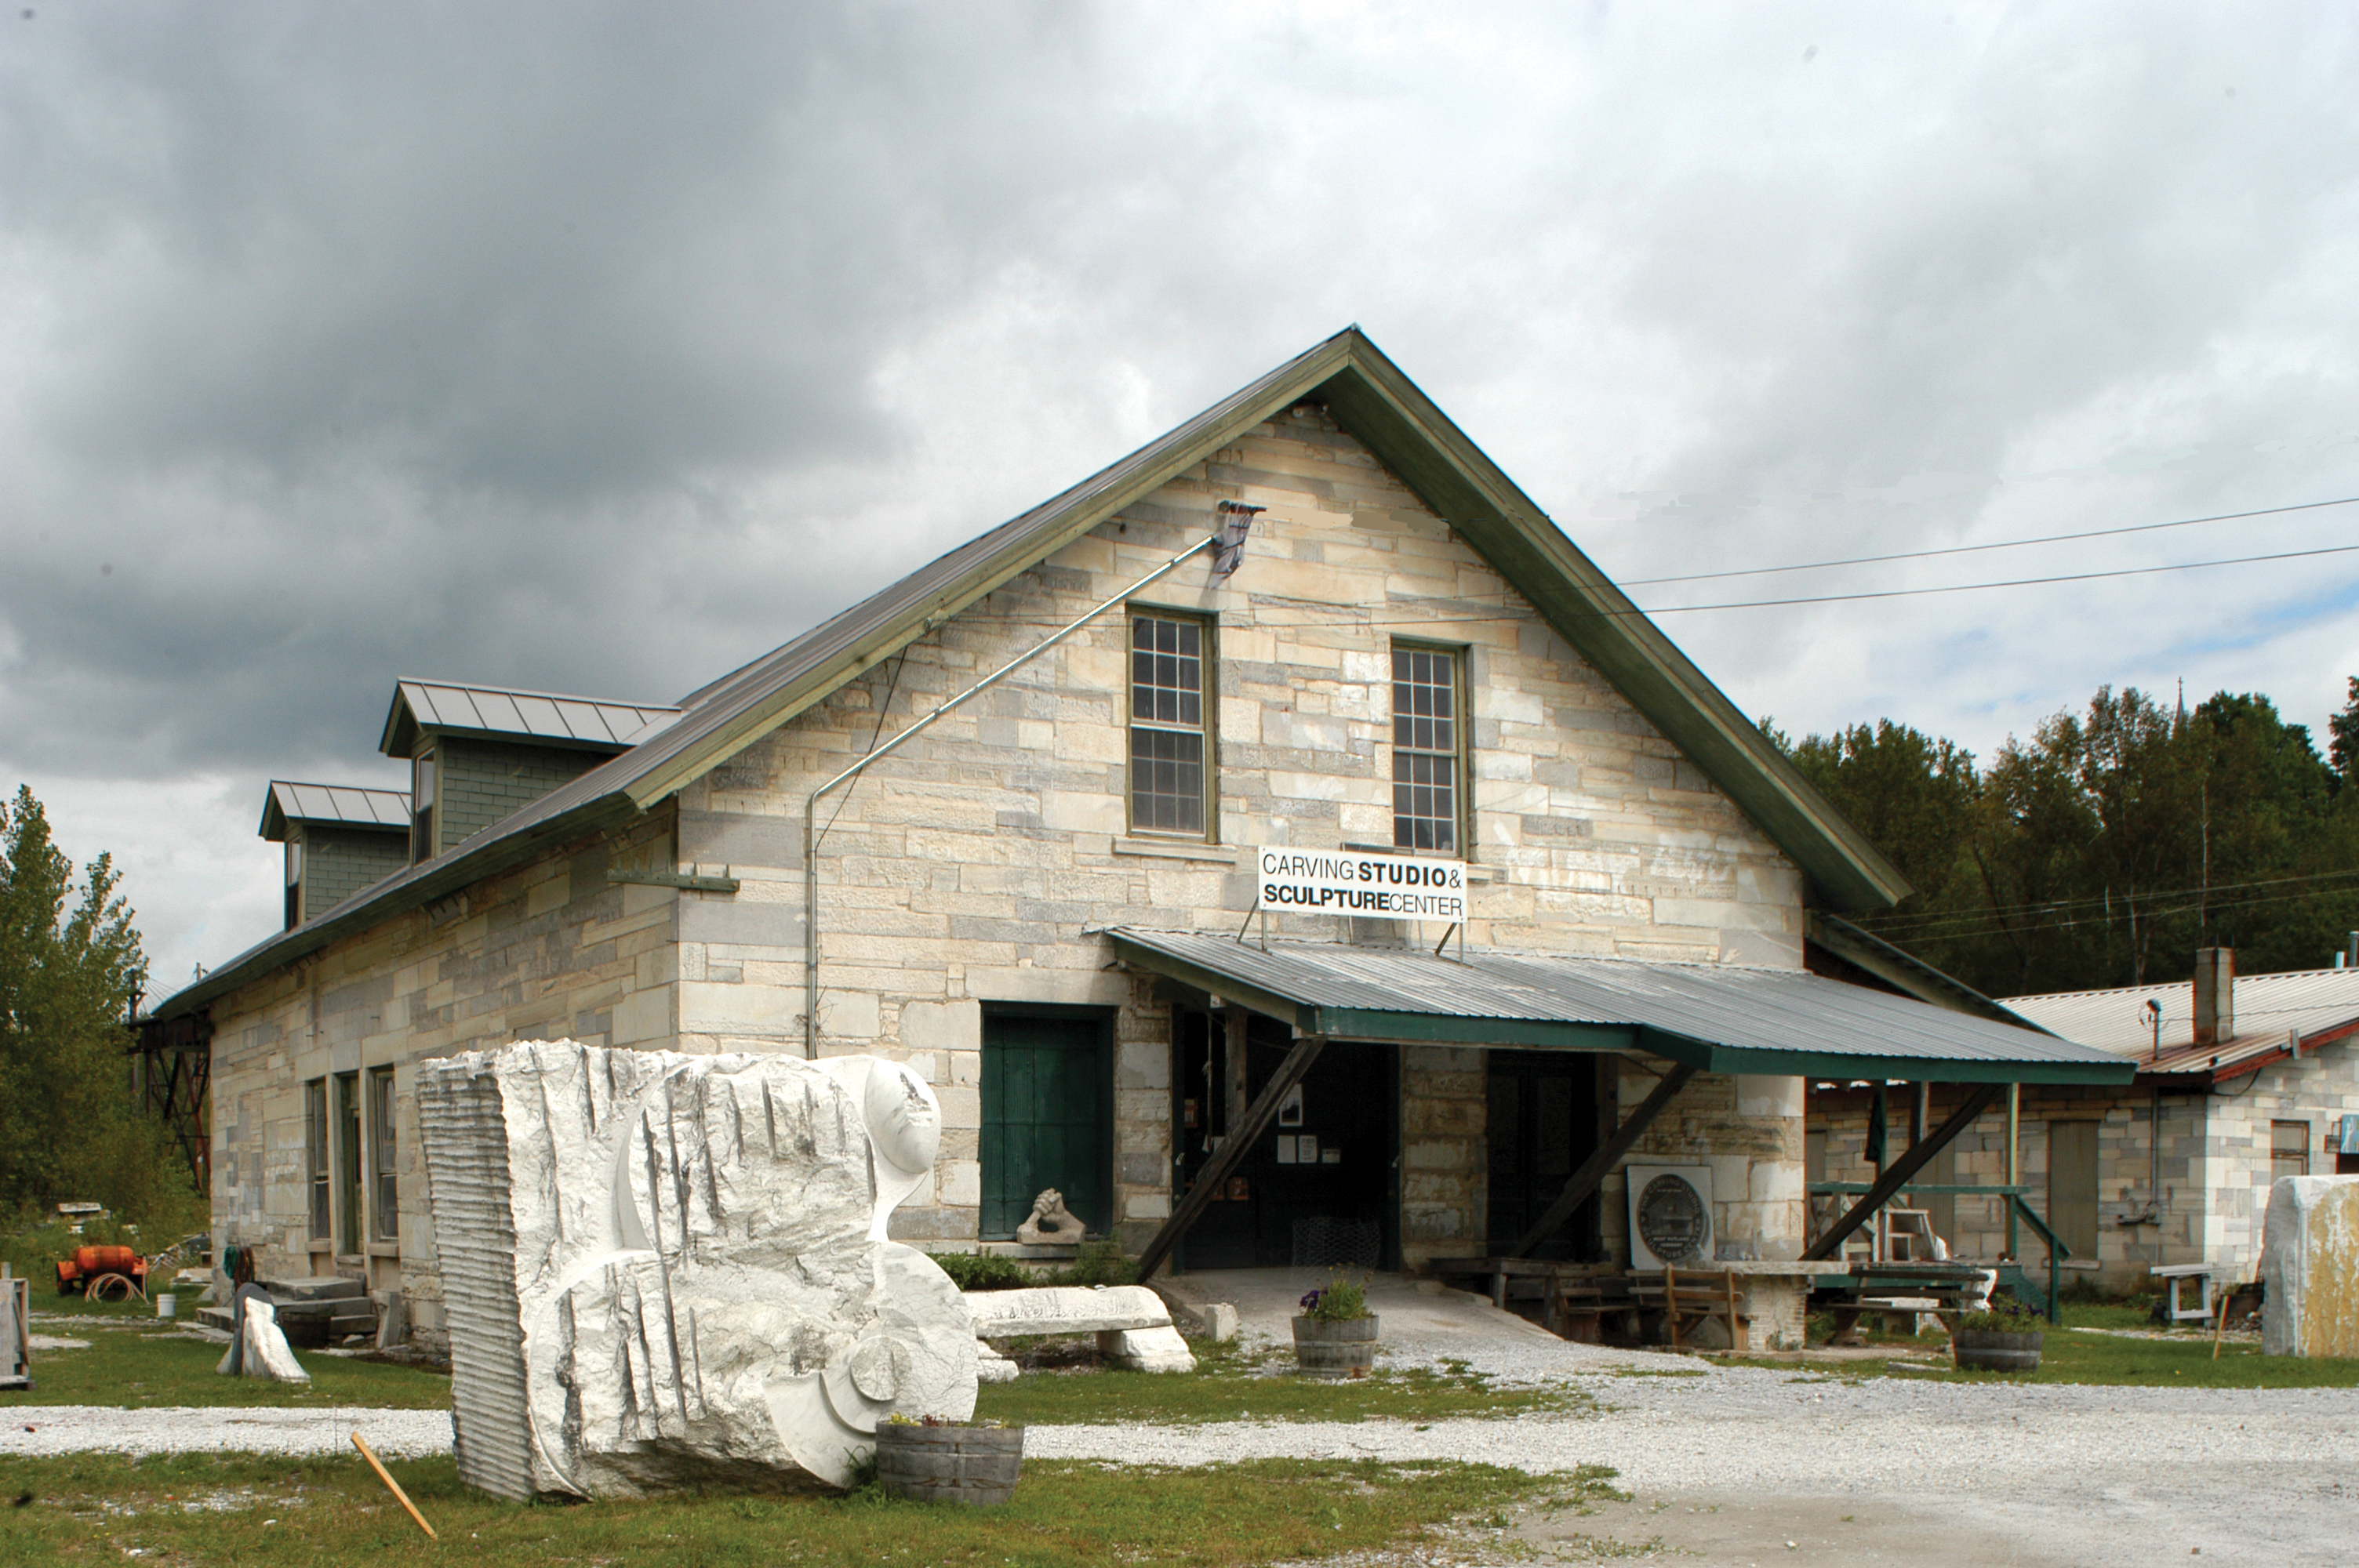 West Rutland Vermont Carving Studio